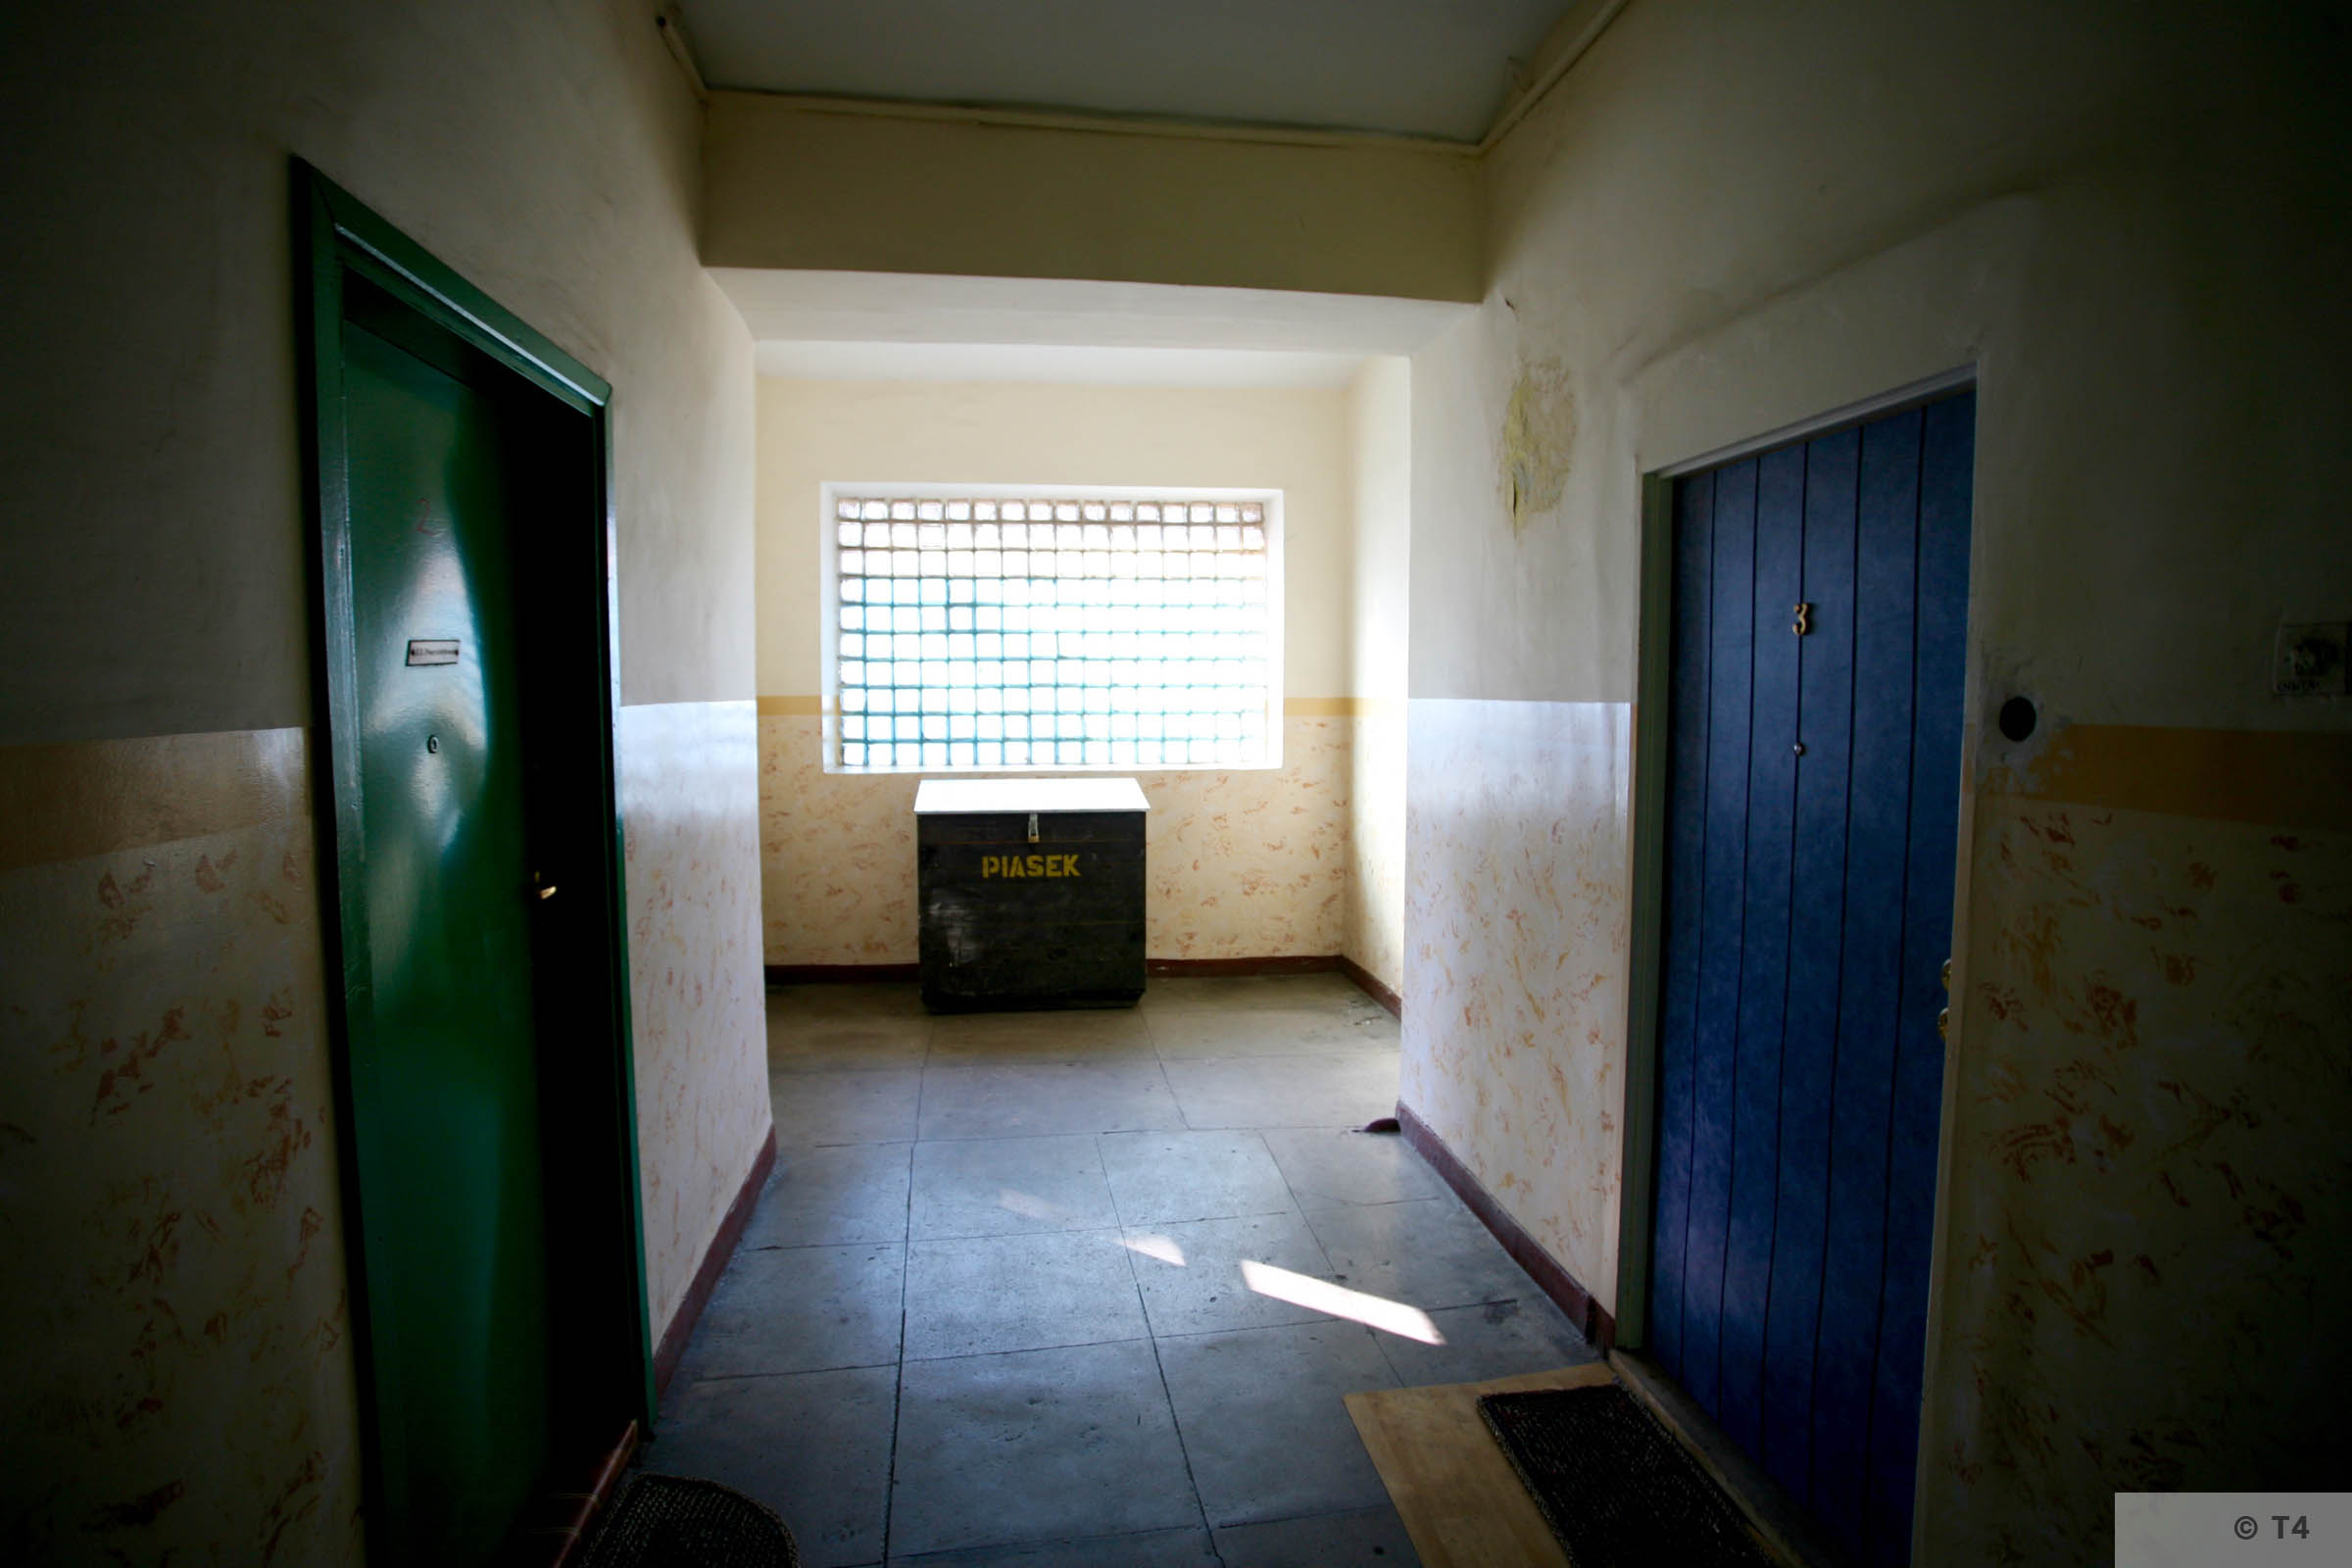 Interior of administrative building, accomodation for prisoners and prisoner cells. 2006 T4 7952